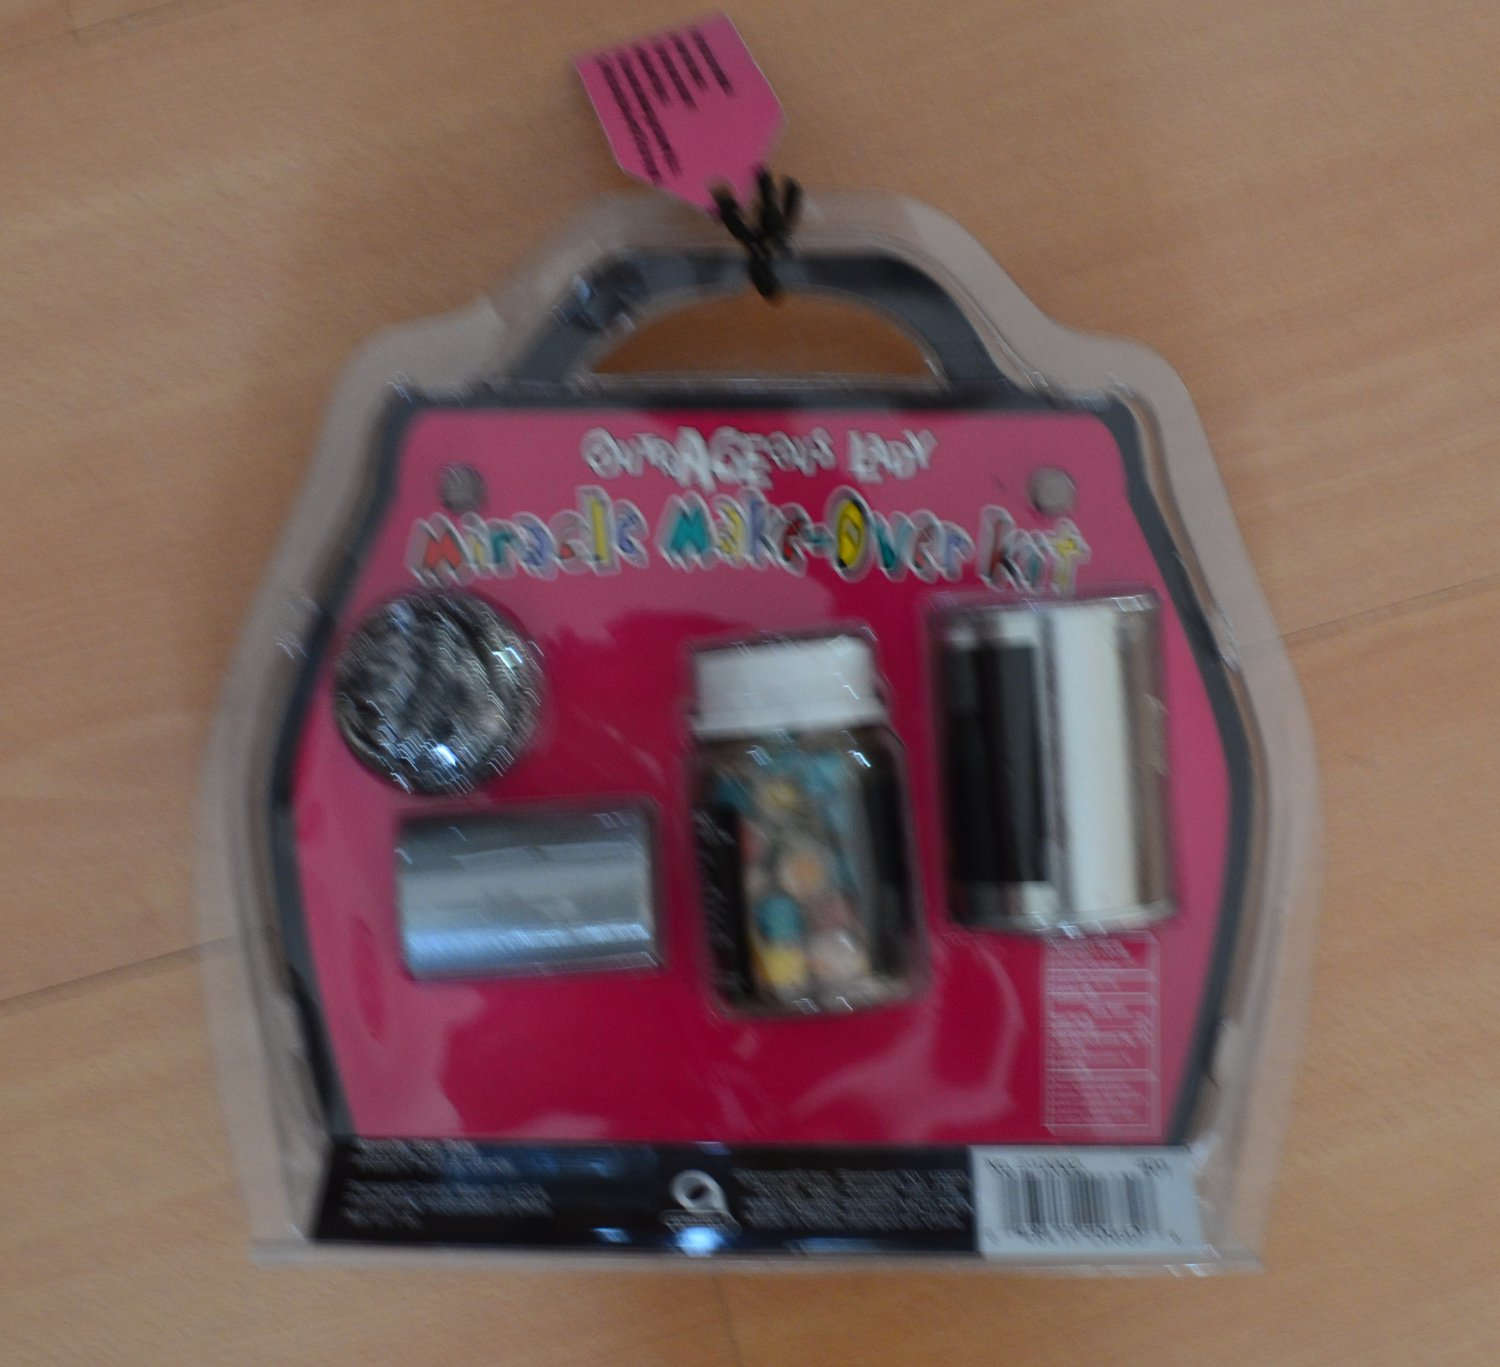 Outrageous Lady Miracle Make-Over Kit Amscan Gag Gift 210002